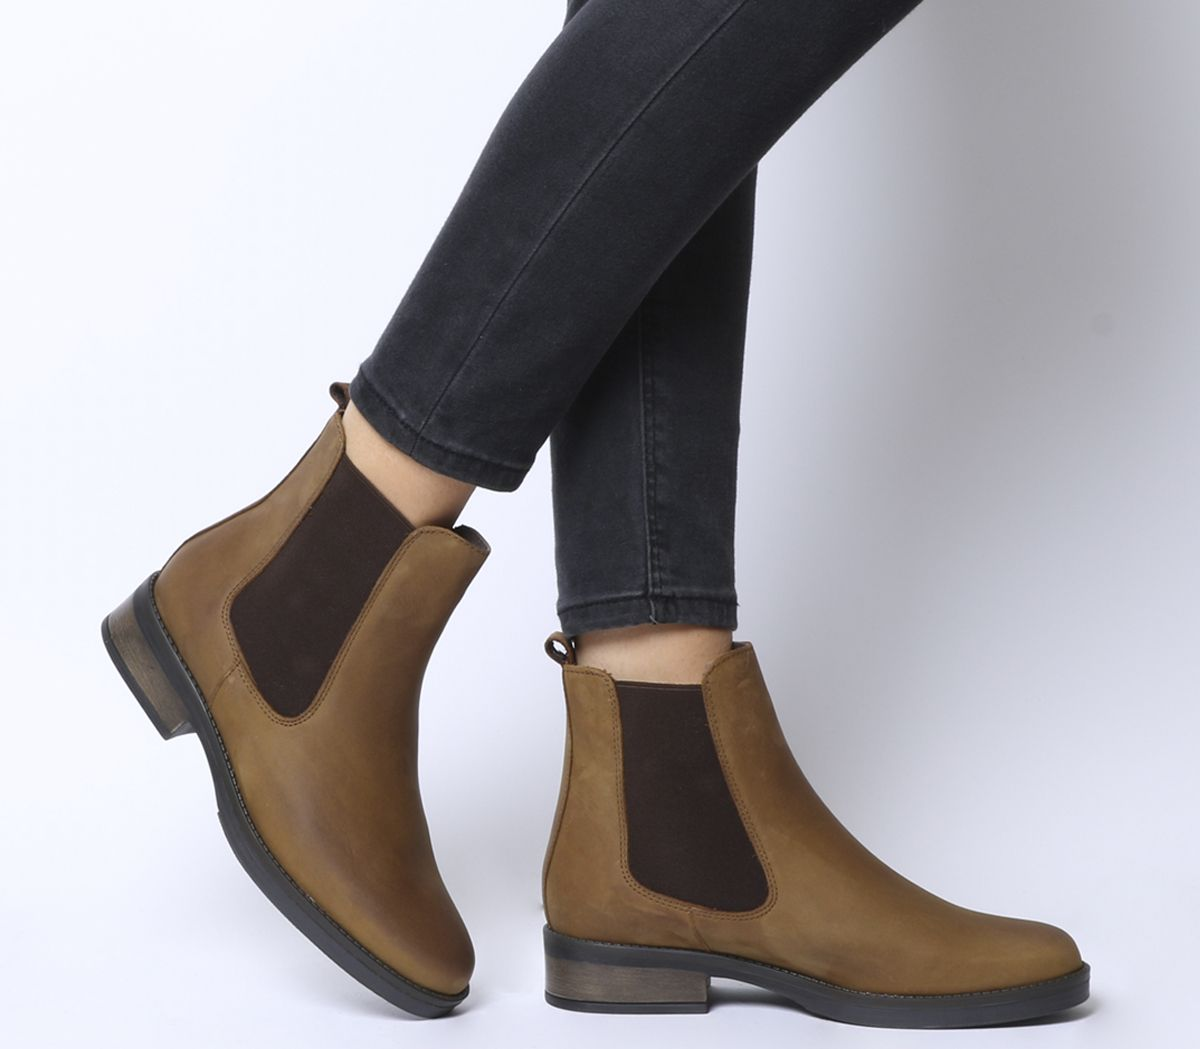 e08f84e04 Office Arlington Casual Chelsea Boots Brown Leather - Womens Chelsea ...